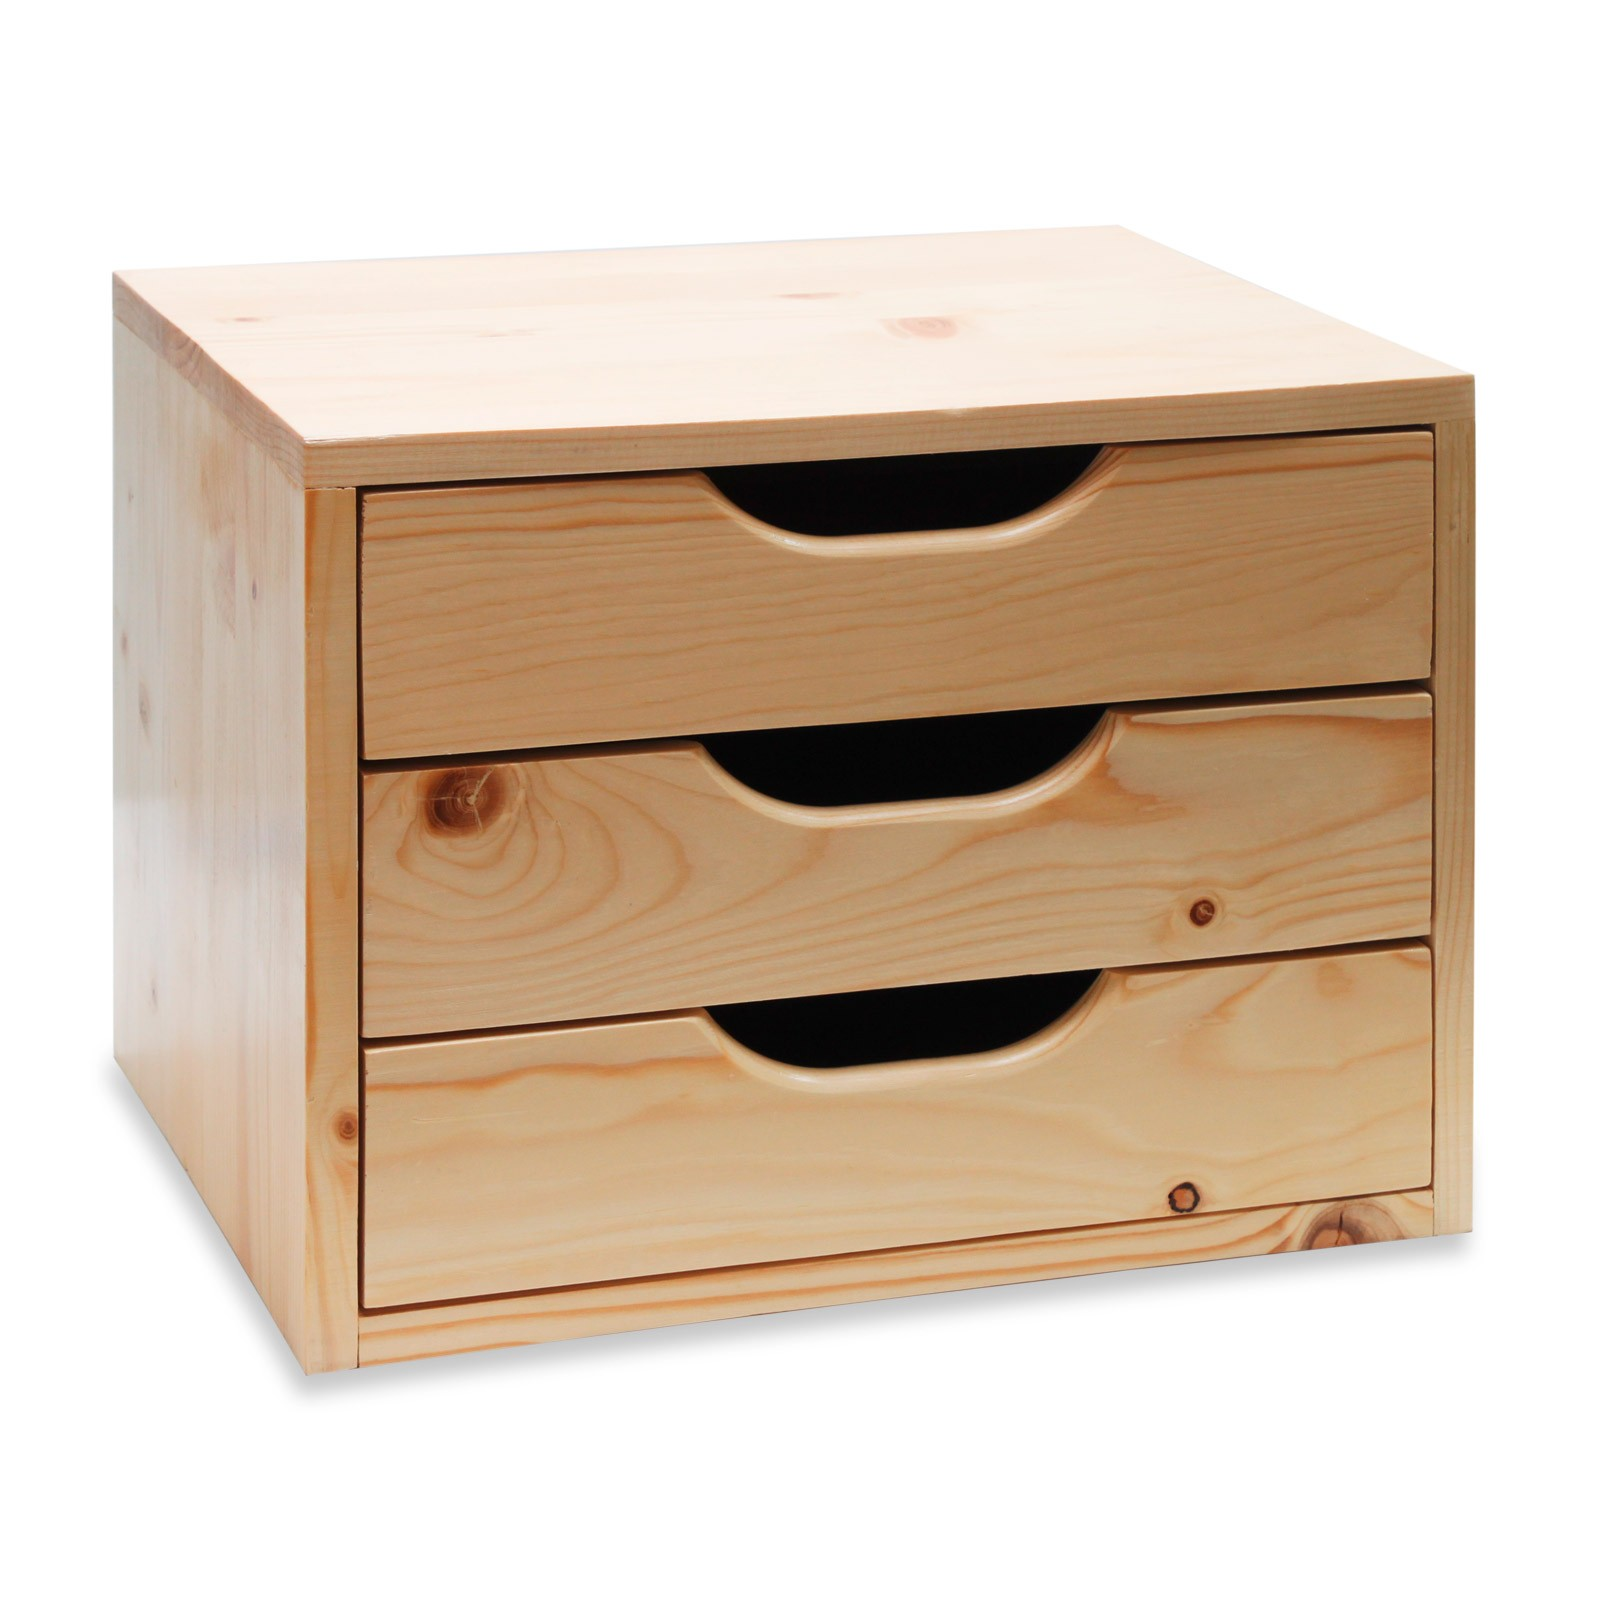 holz schubladenbox sb 3 4 5 6 schubladen ablagebox sch be zur auswahl ebay. Black Bedroom Furniture Sets. Home Design Ideas